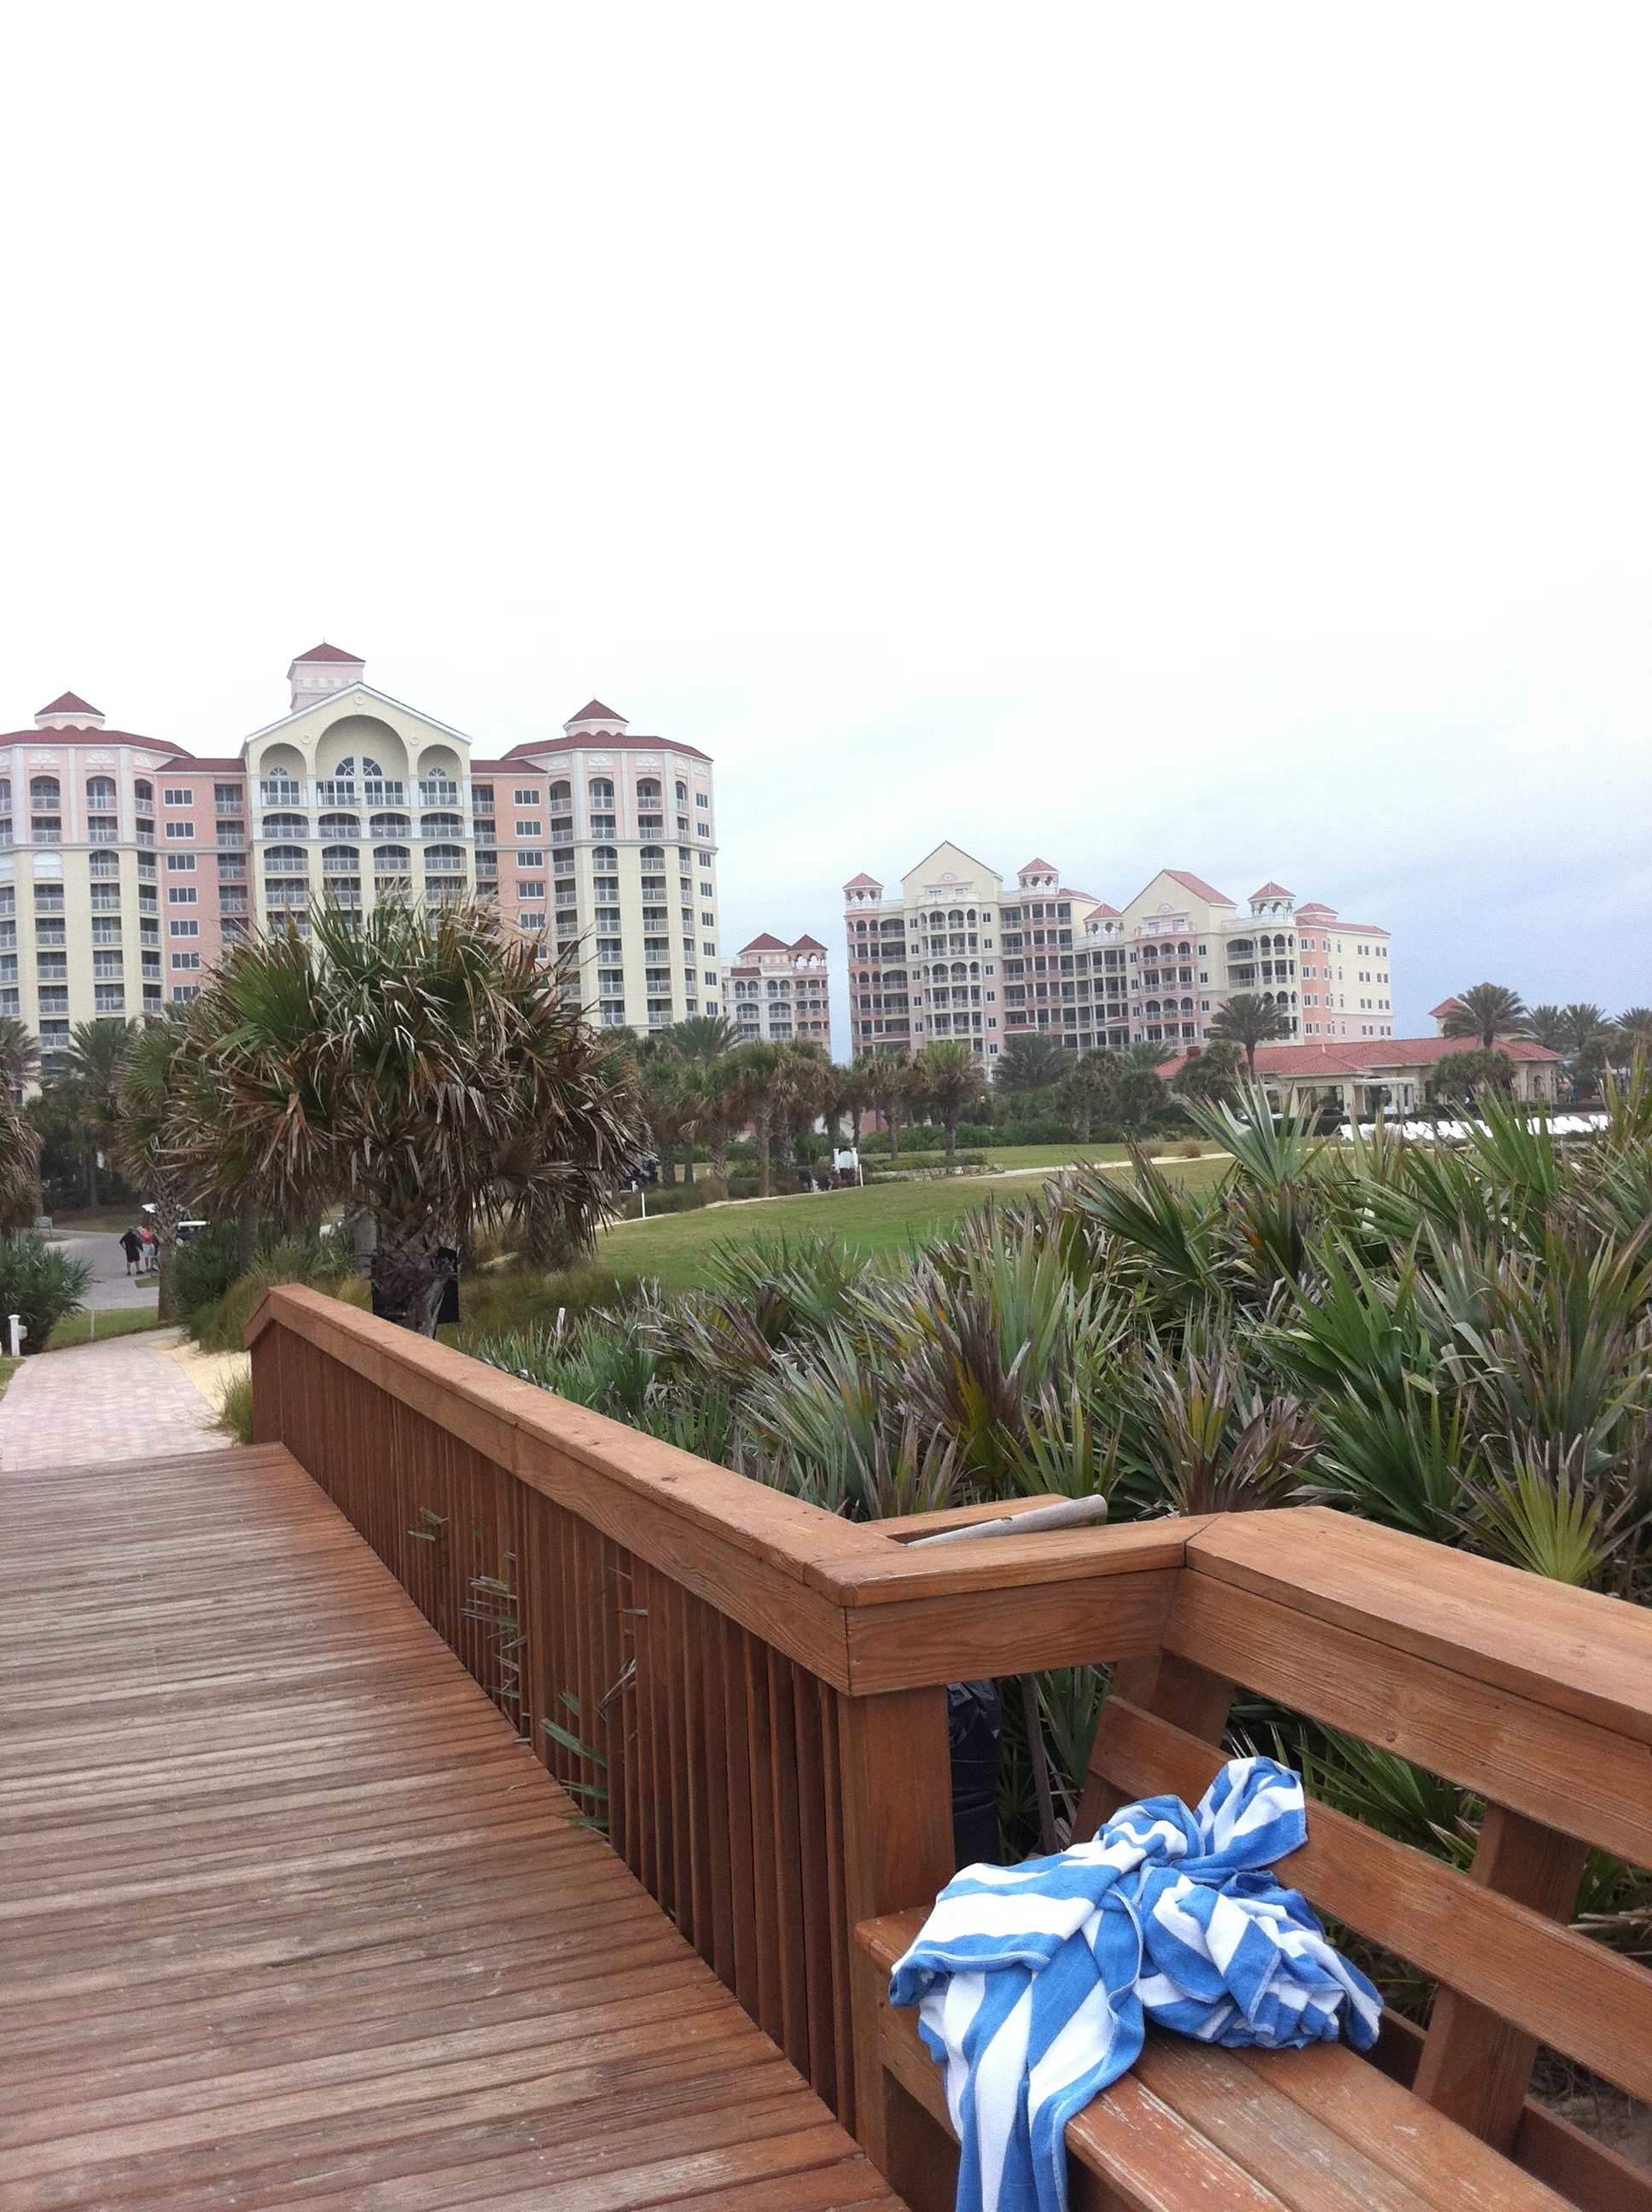 Hammock Beach Resort, Home of PIMA 2012